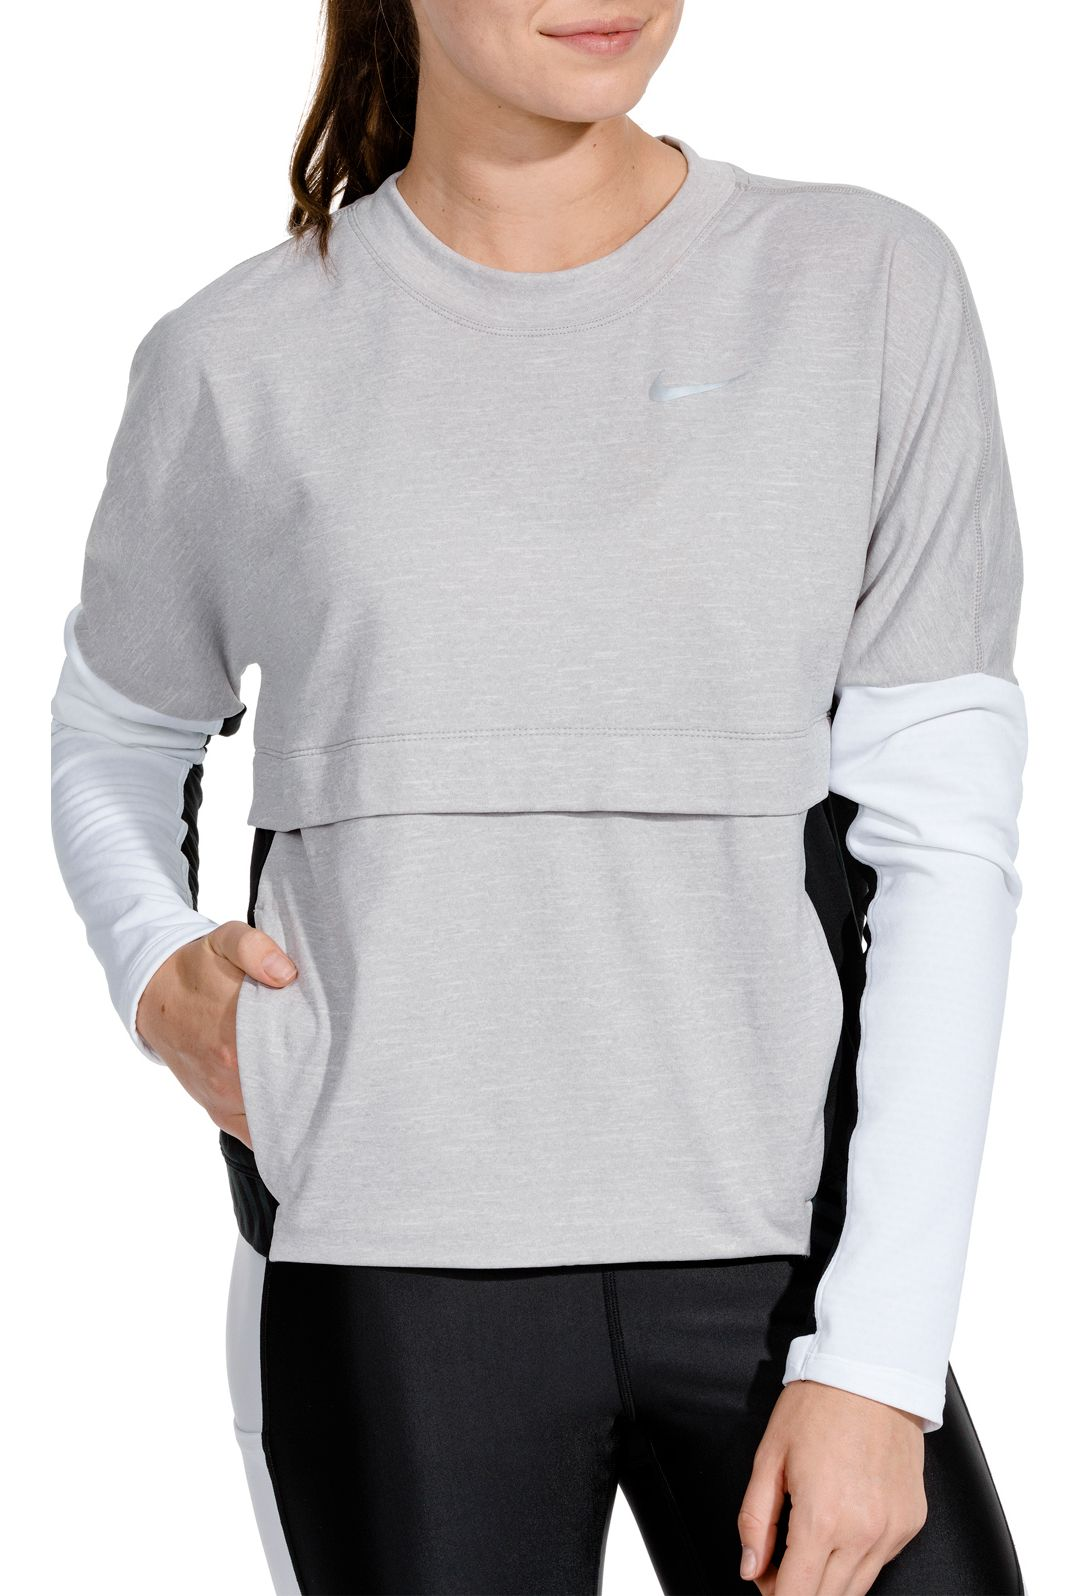 6a3a30ae15318 Nike Women's Dri-FIT Therma Sphere Long Sleeve Running Top | DICK'S ...